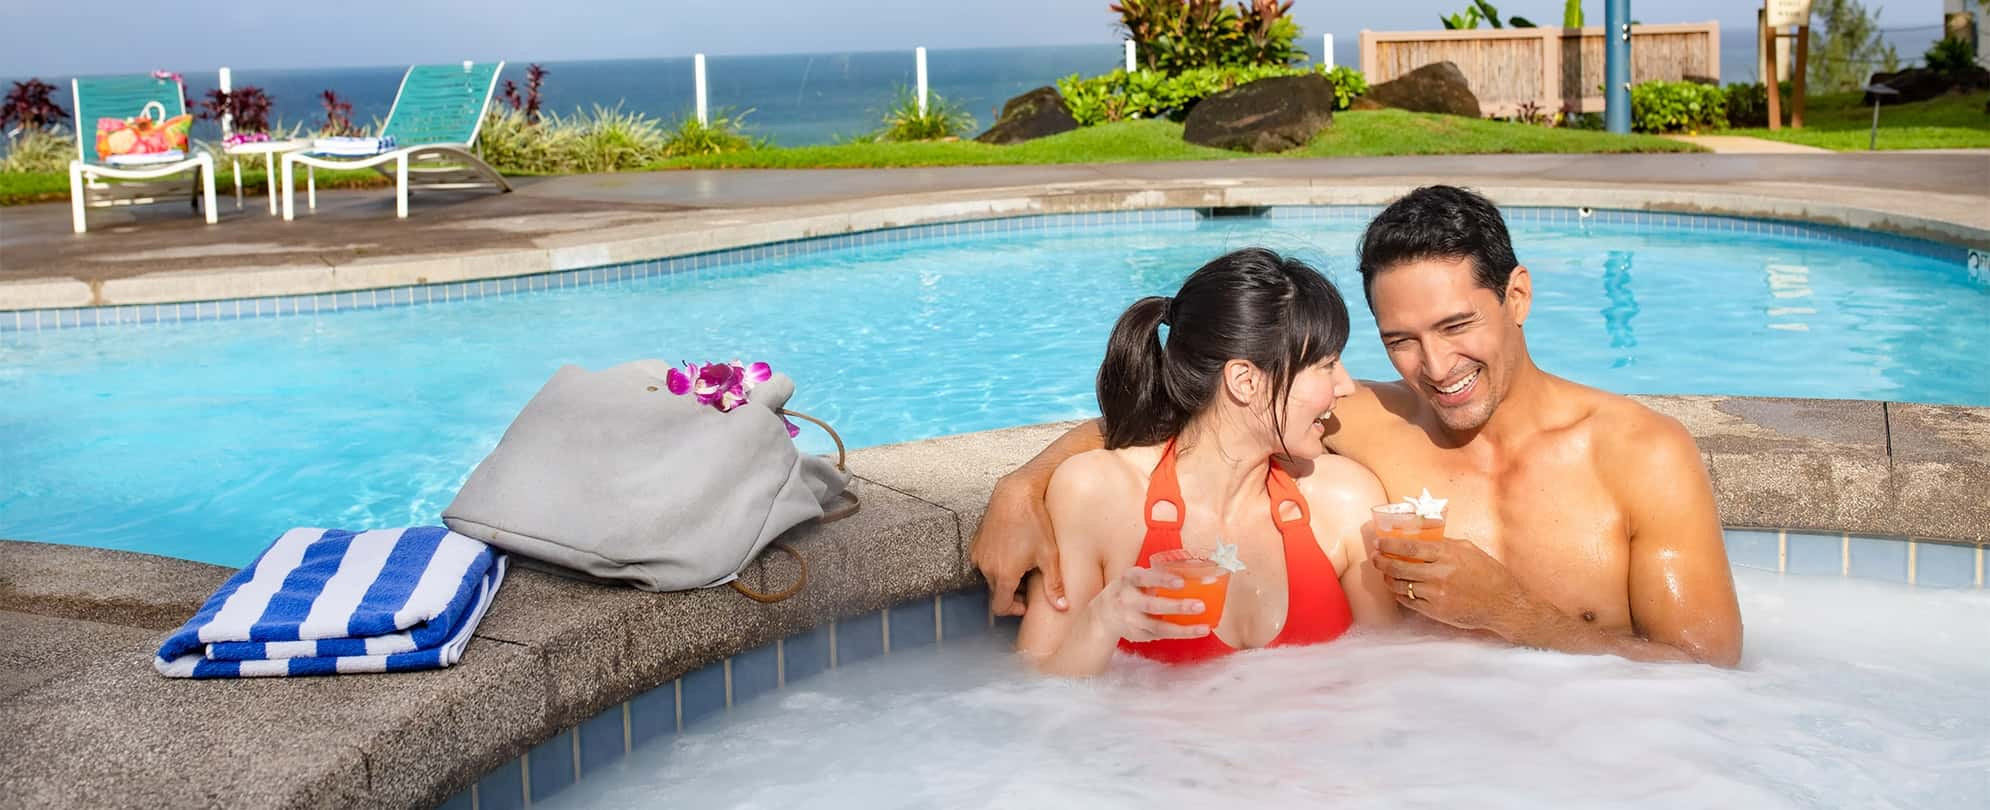 Husband wraps his arm around his wife as they enjoy drinks in a hot tub of a Margaritaville Vacation Club resort.